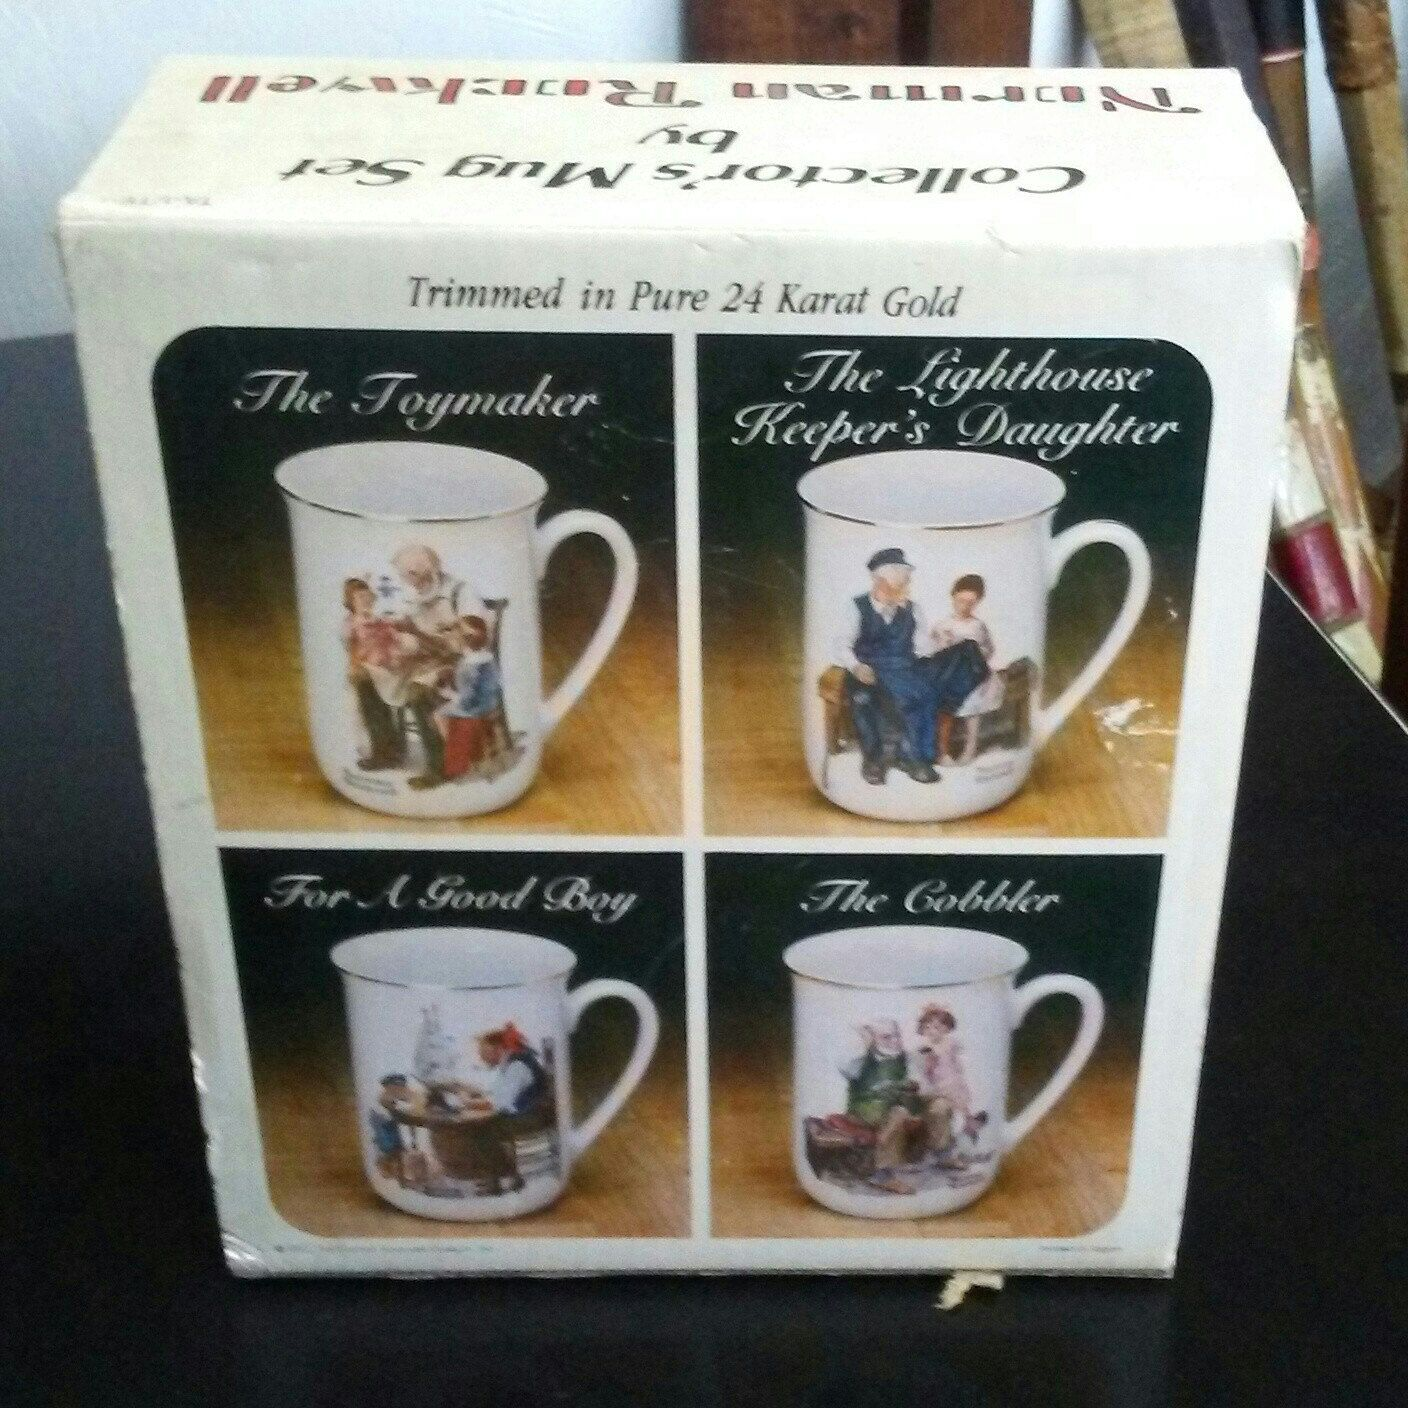 785e582d2b7 Vintage Norman Rockwell coffee mugs for sale at Frugal Fortune in our Etsy  shop. Nationwide shipping.